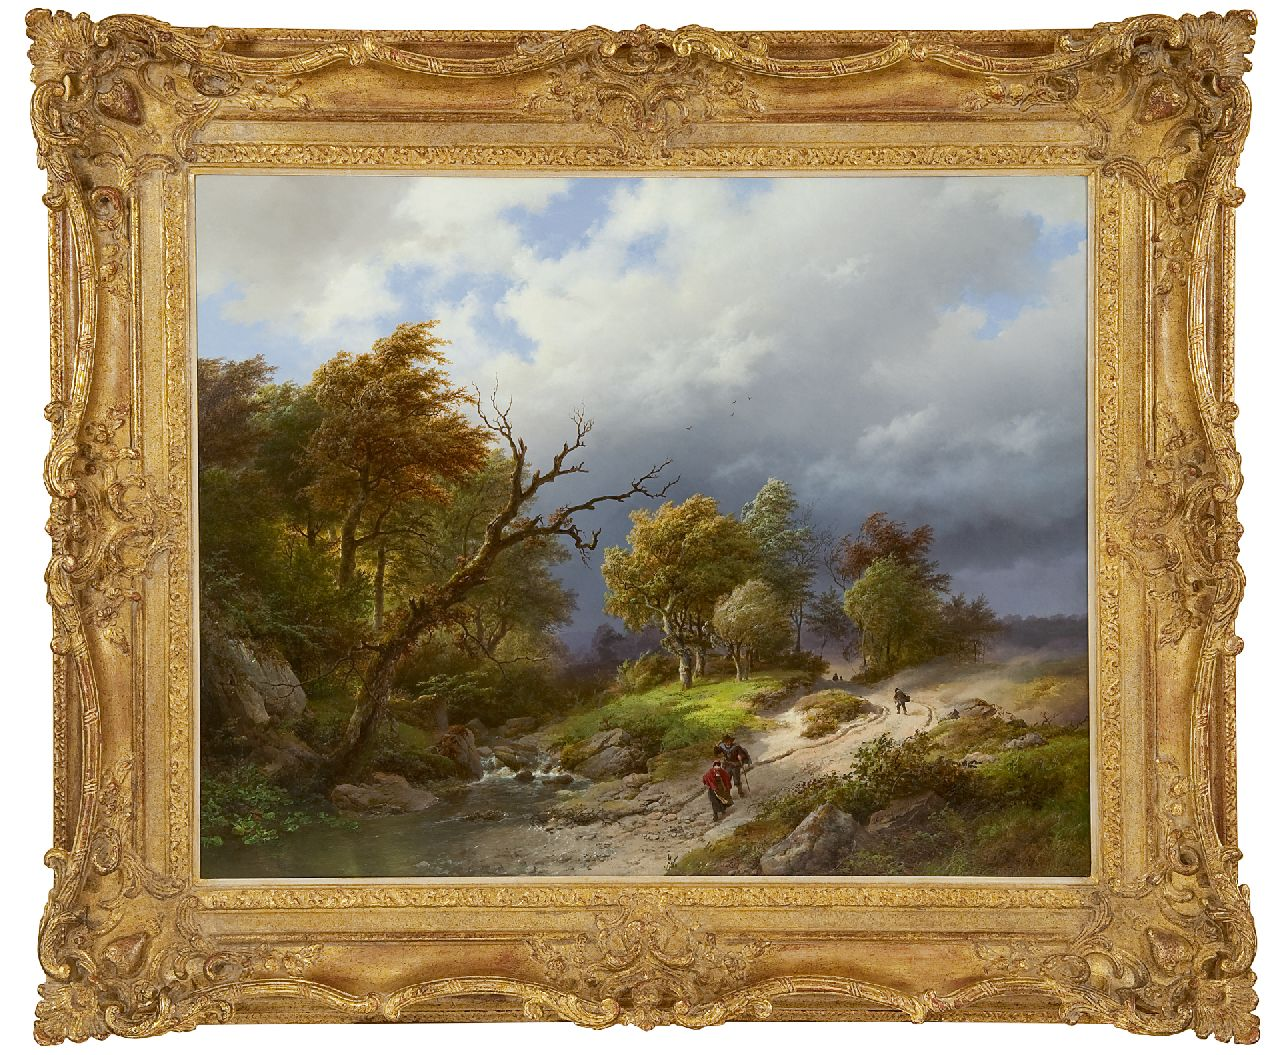 Koekkoek B.C.  | Barend Cornelis Koekkoek | Paintings offered for sale | Upcoming storm, oil on panel 65.5 x 83.7 cm, signed l.r. and dated 1843